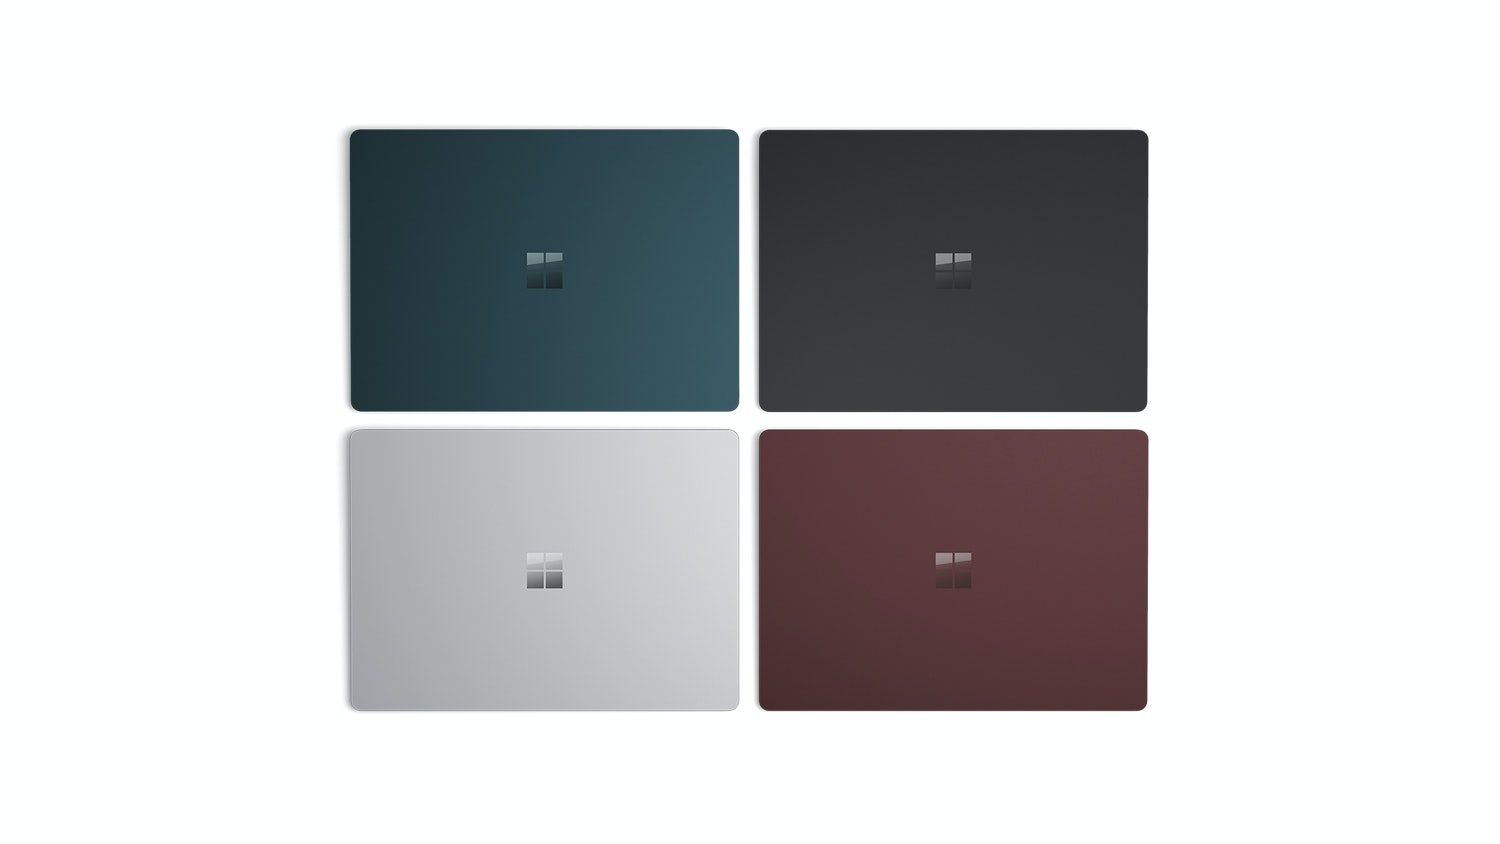 Surface Laptop 2 Main